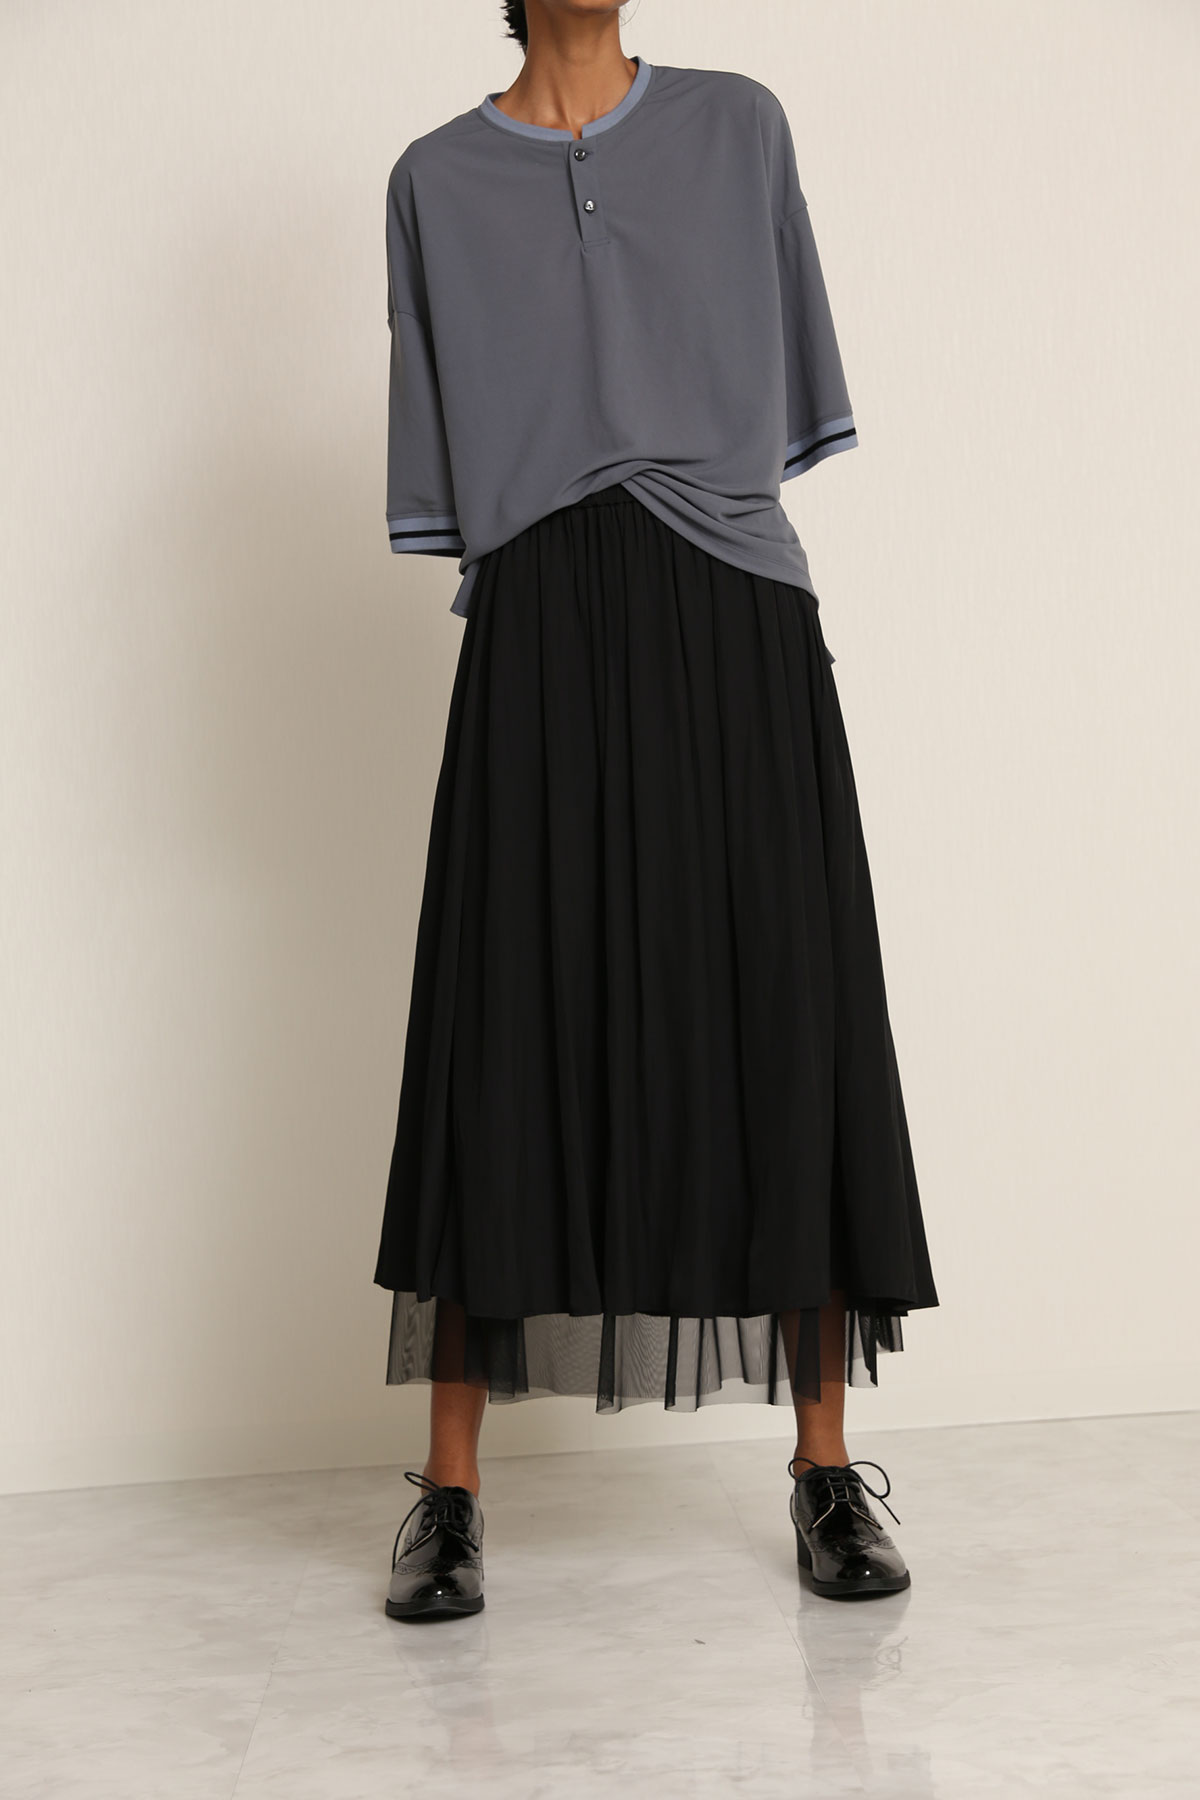 BO21-111K-black Ordinary de Chine Dairy/Dinner Skirt -BLACK-【BO21-111K】Del.Jan.